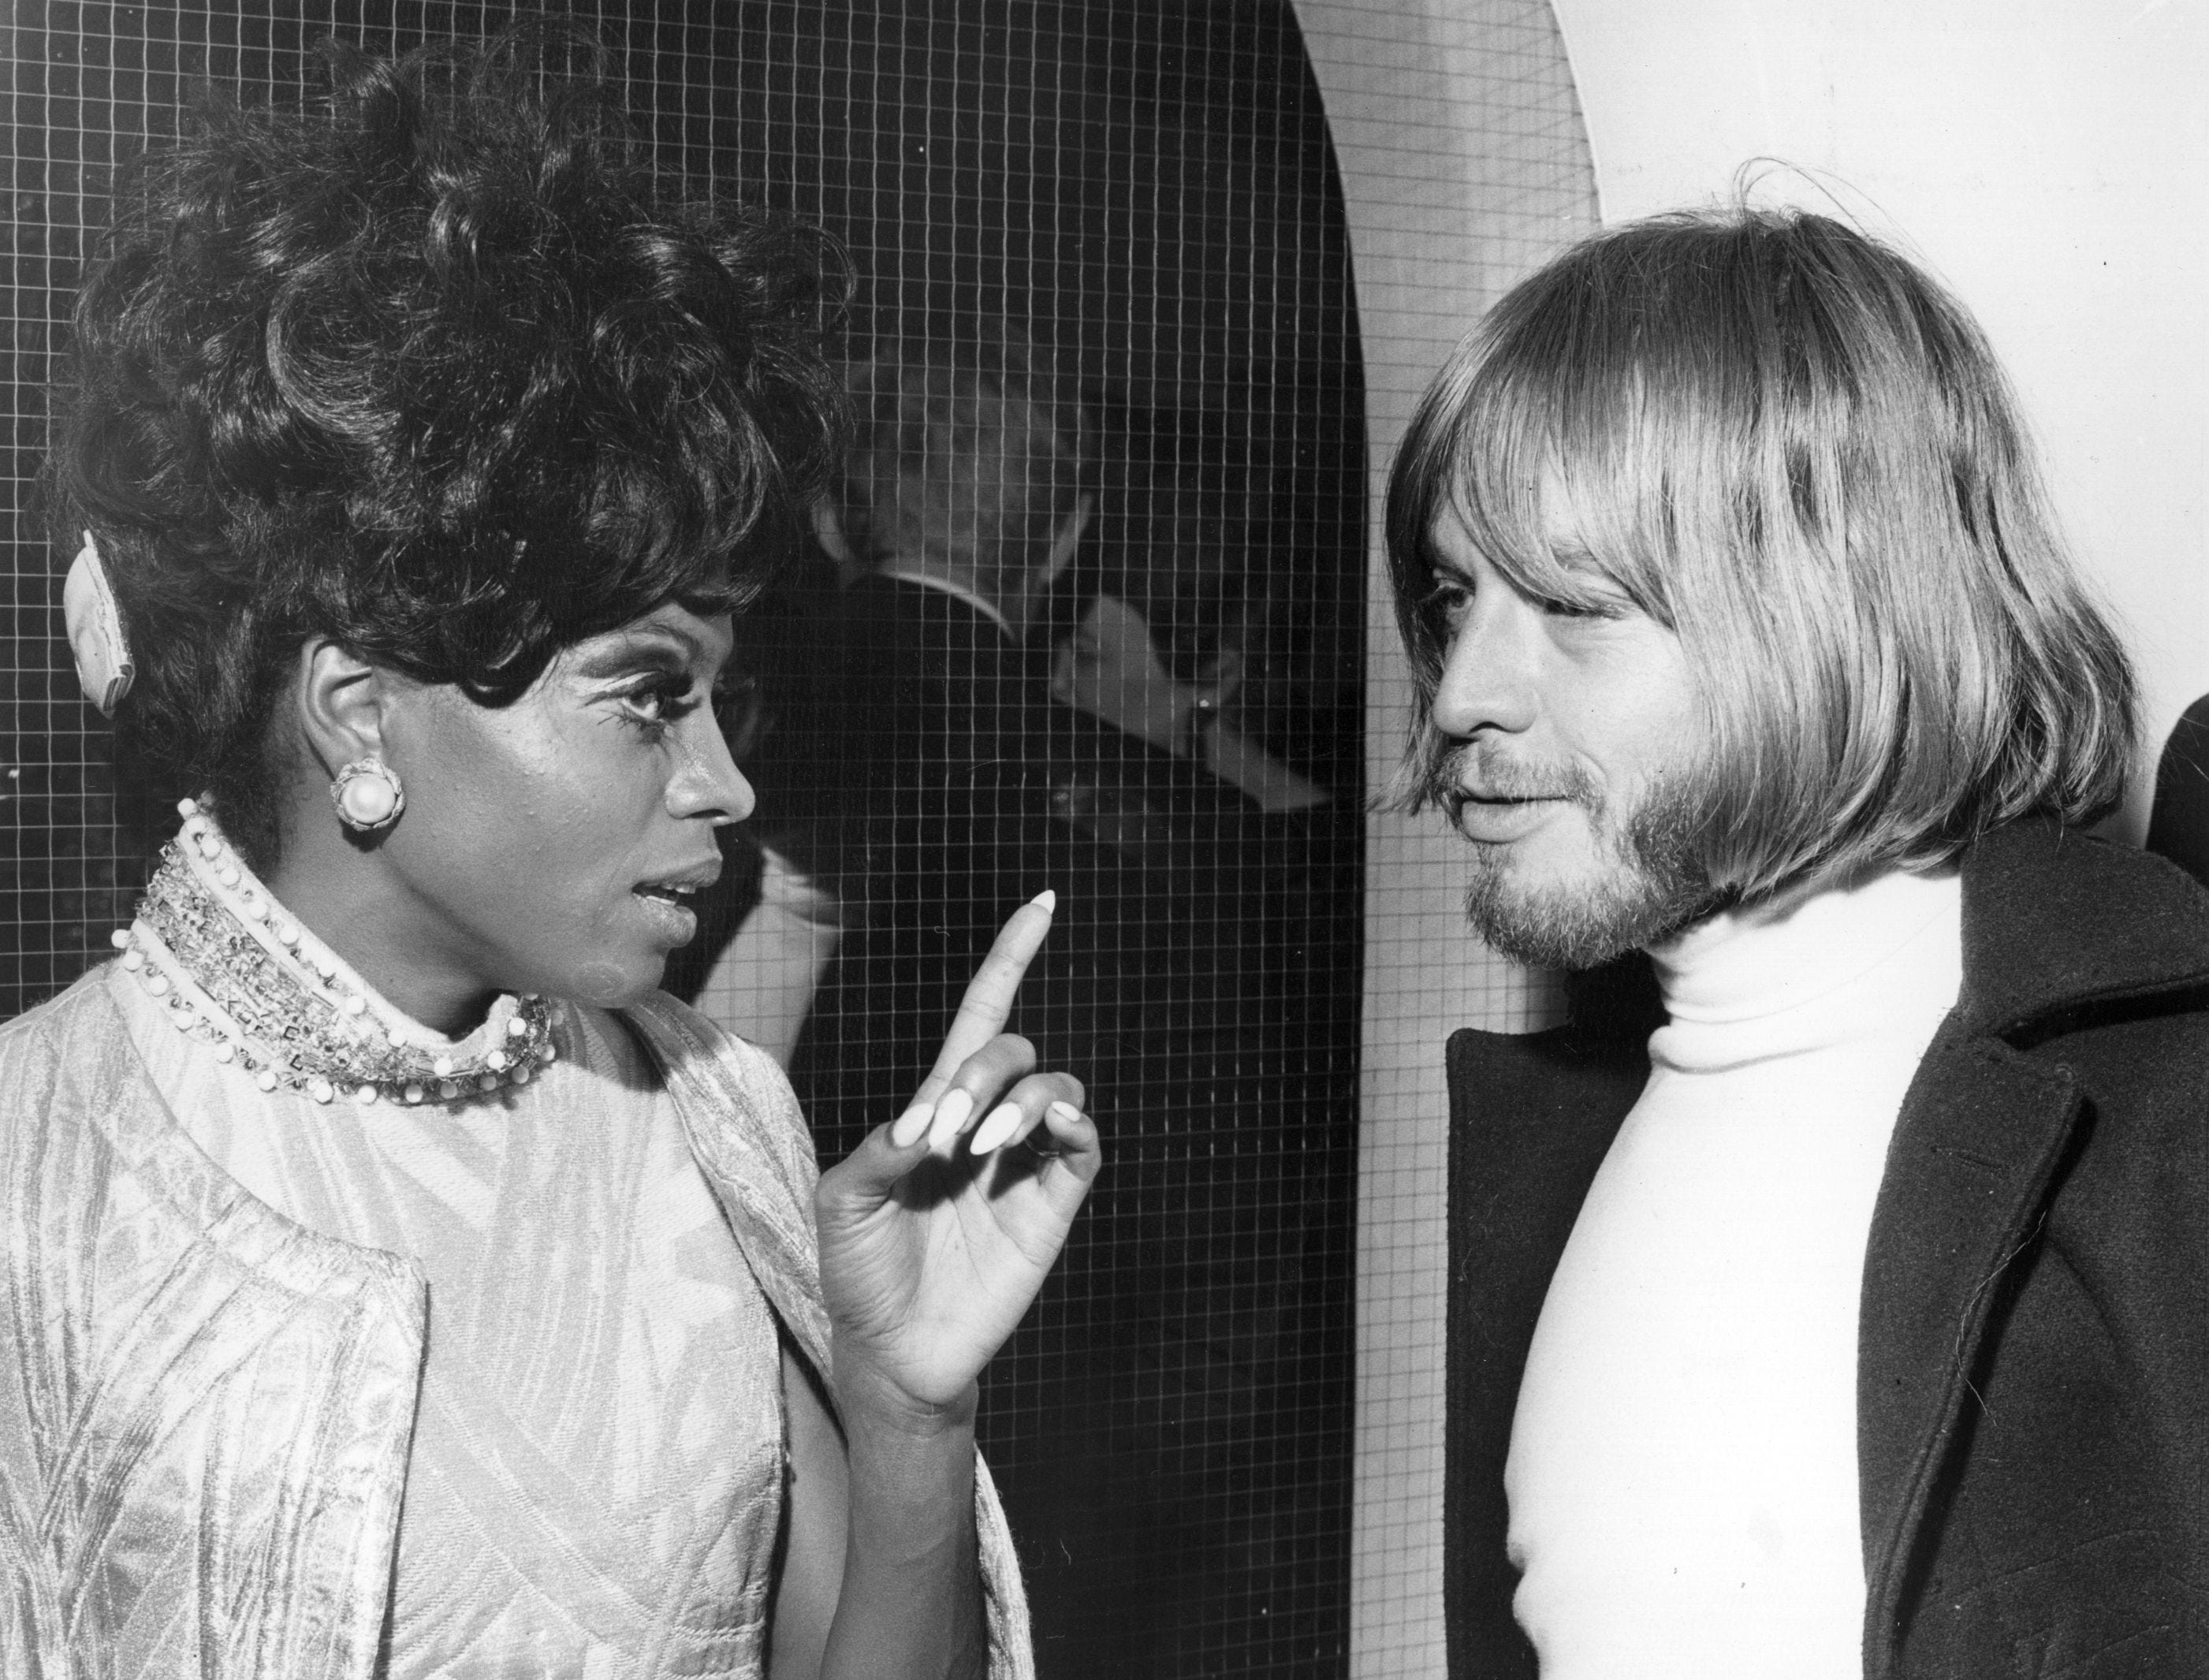 Diana Ross chats with Brian Jones of the Rolling Stones during an aftershow party hosted by the Duke and Duchess of Bedford to celebrate The Supremes performance on Sunday Night At the Palladium, Jan. 29, 1968.